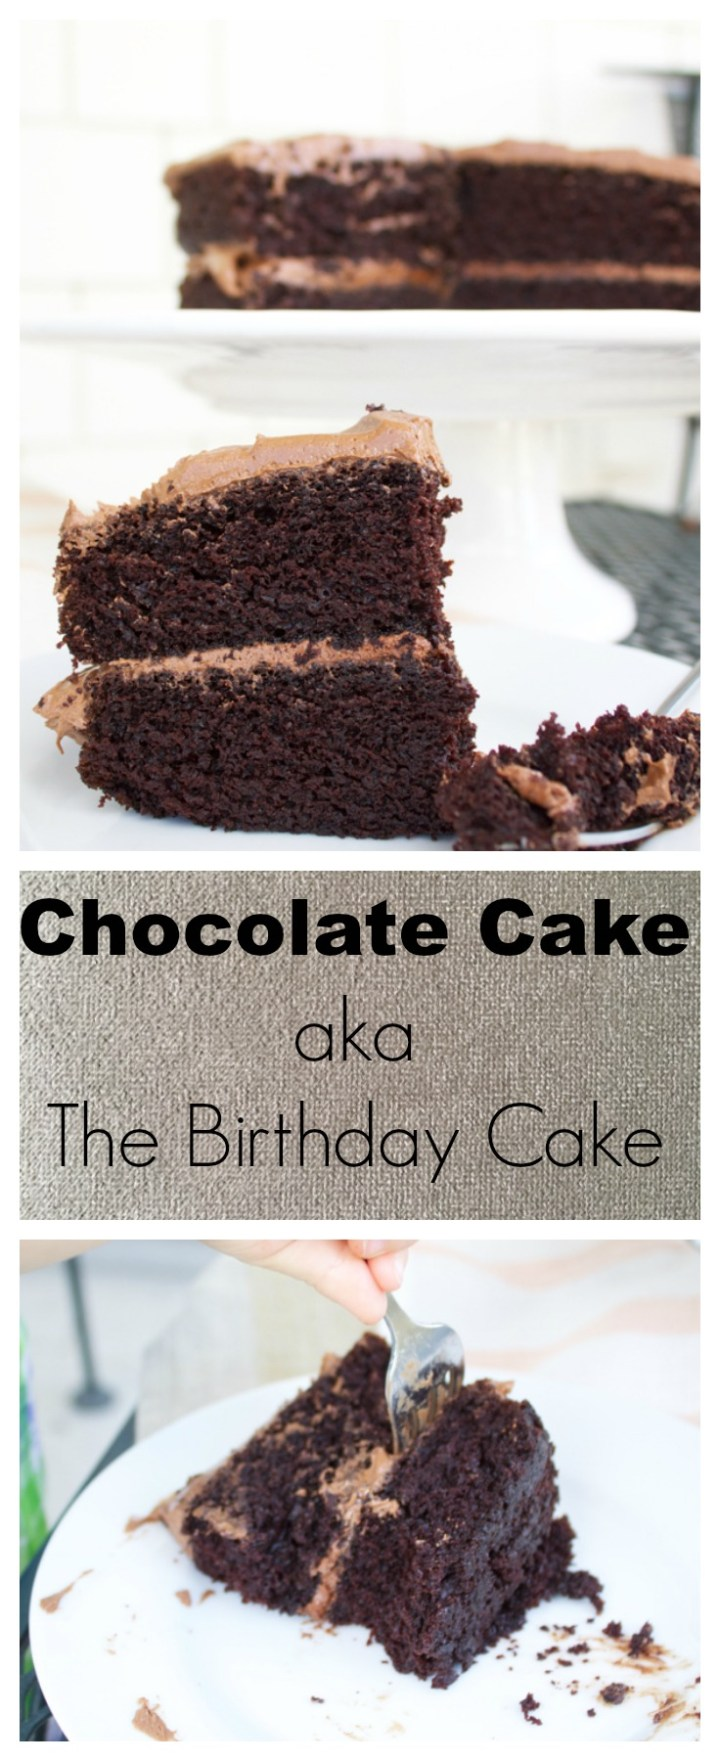 This chocolate cake is so moist, so rich, and so easy to make! It's very much in demand for birthdays and any special occasion at our house.